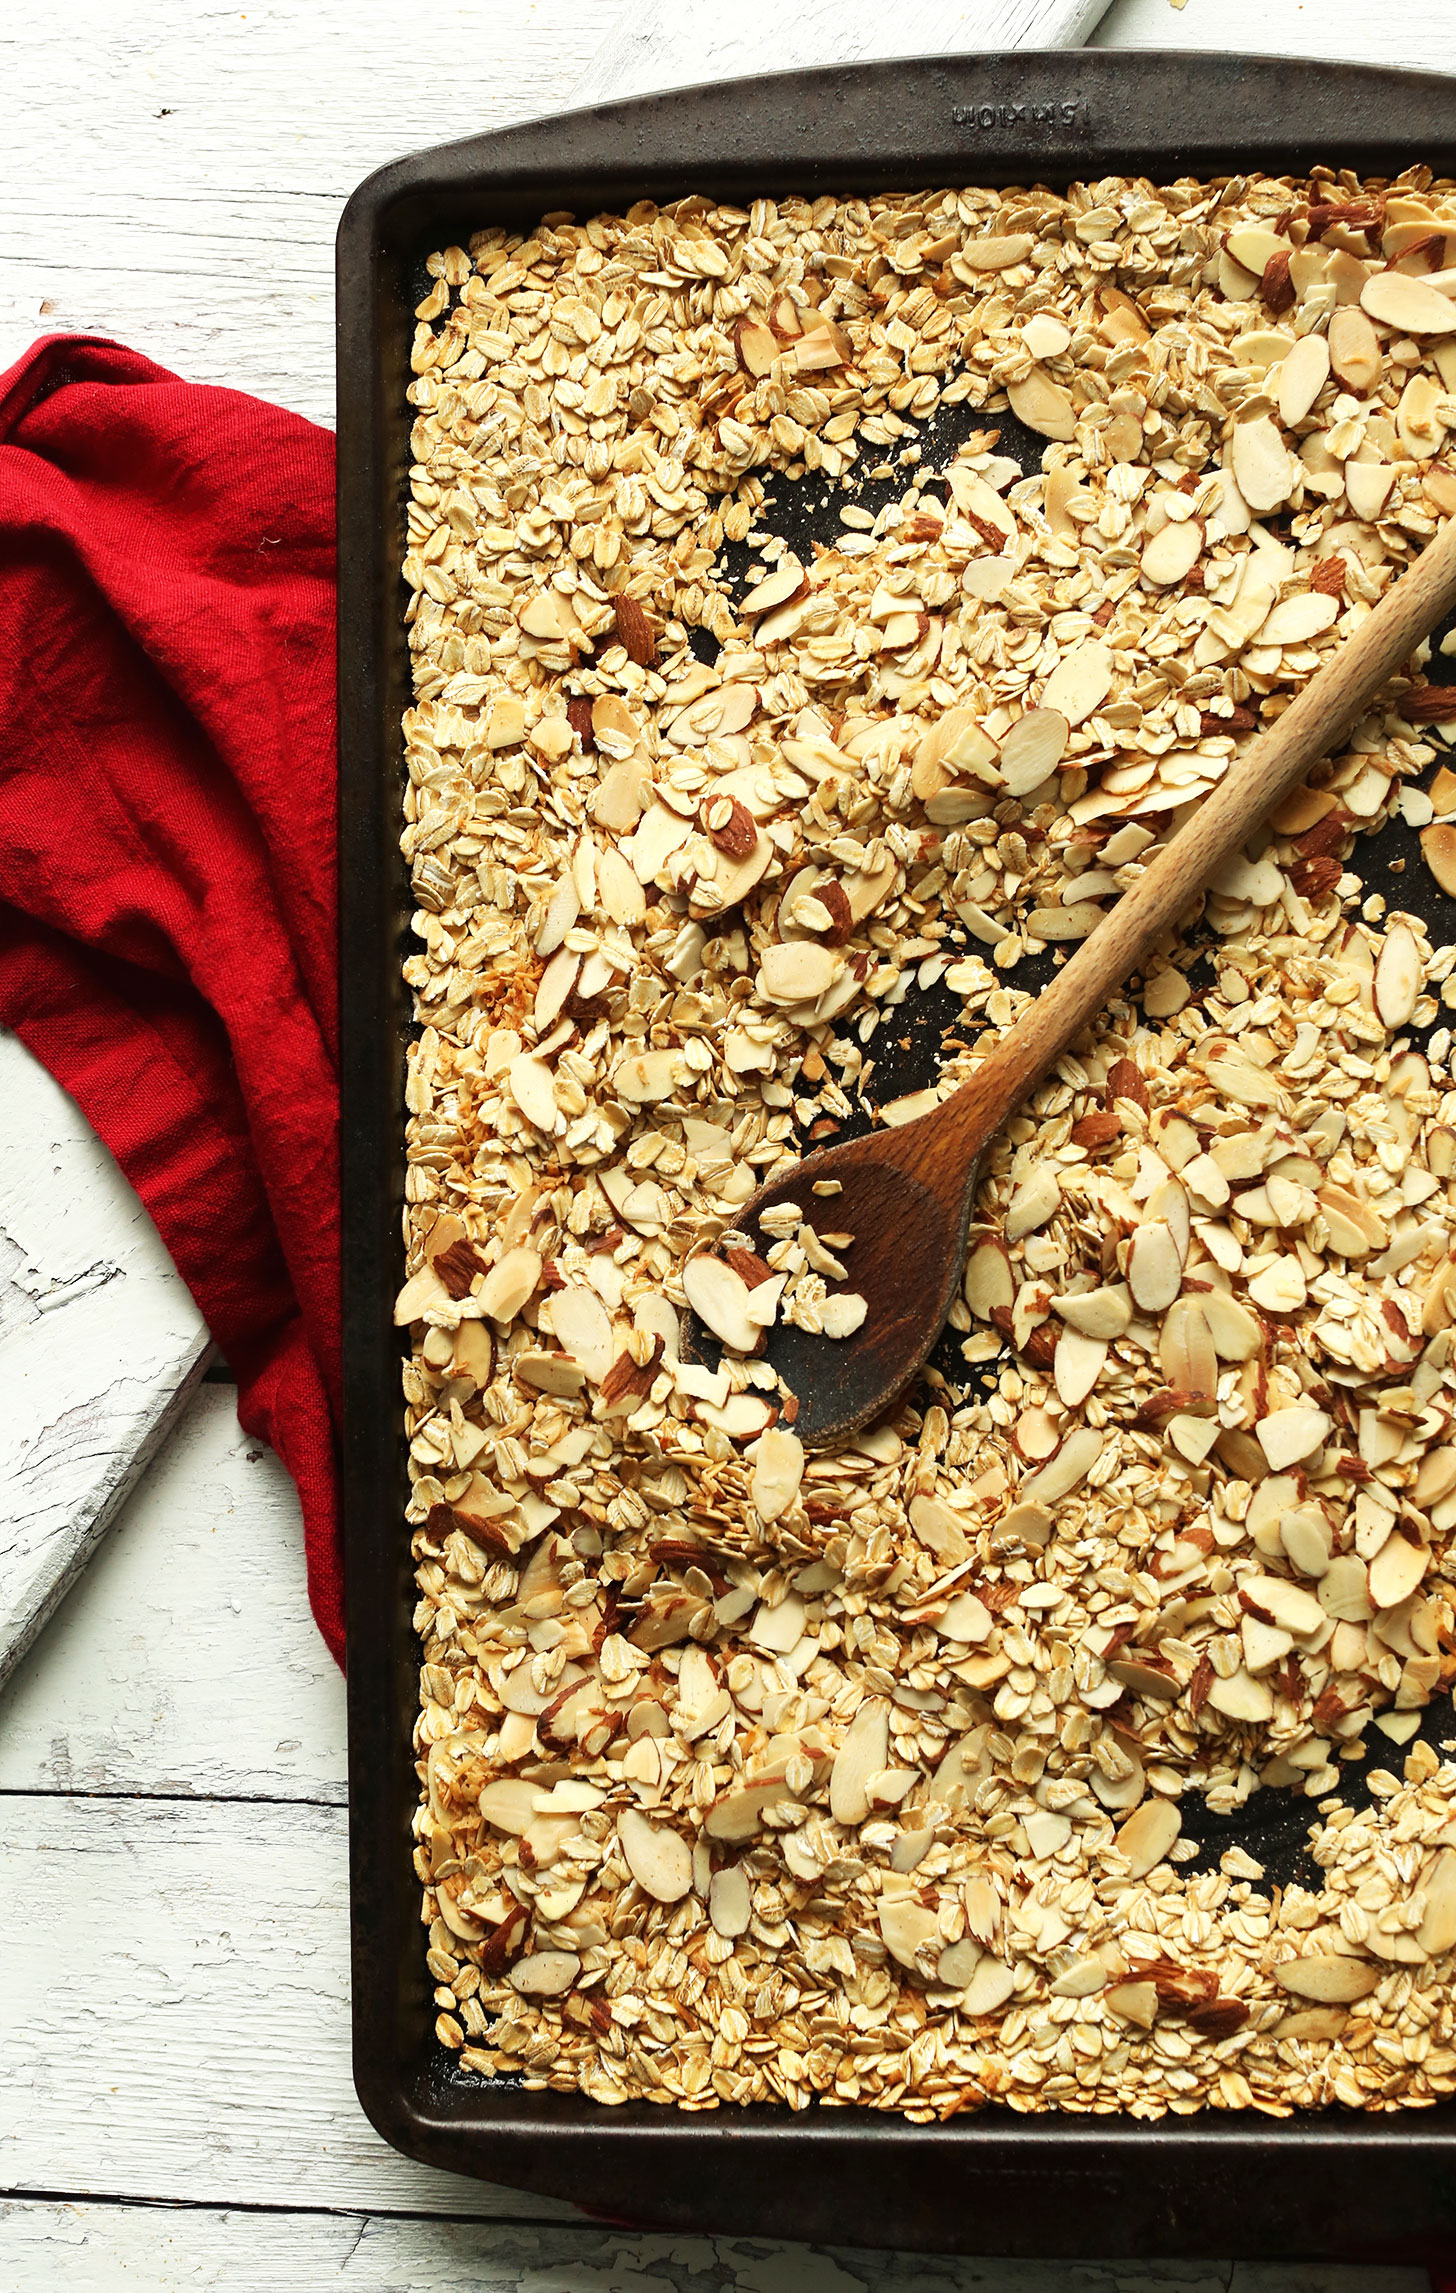 Baking sheet with oats and almonds for making our Easy homemade Peanut Butter Granola Bars